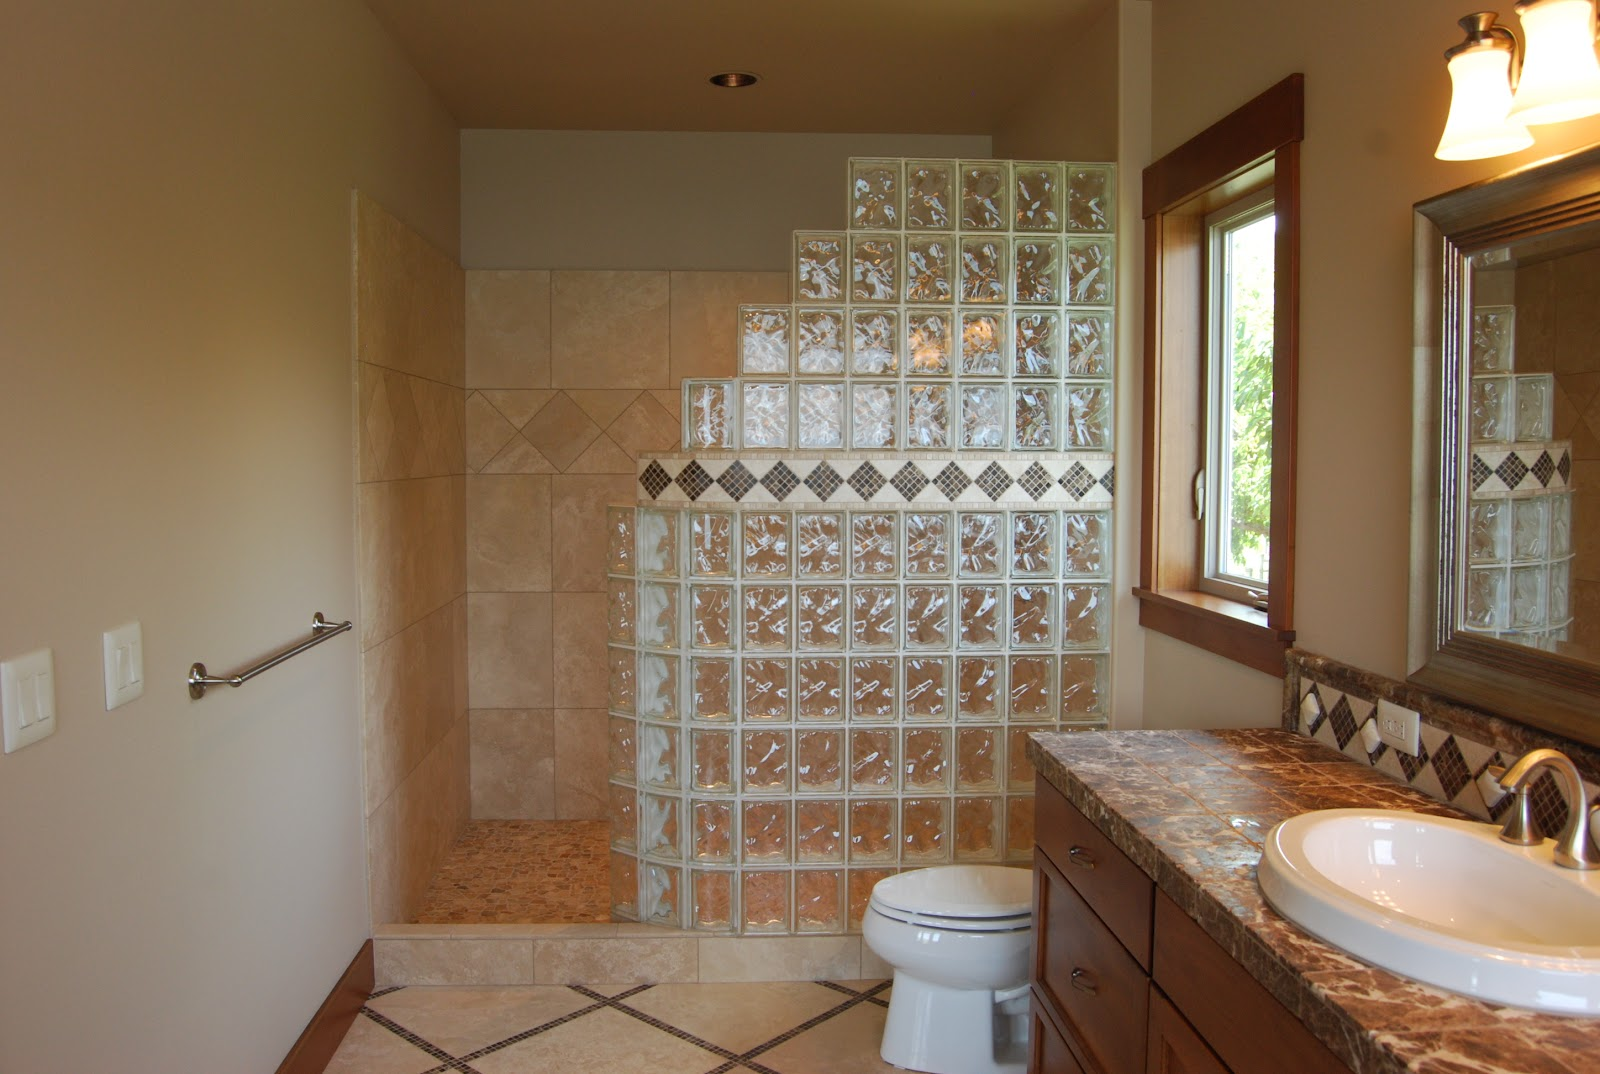 Seattle Glass Block: Glass Block Shower Kits Install in 4 Easy Steps! #492D19 1600x1074 Banheiro Autocad Bloco